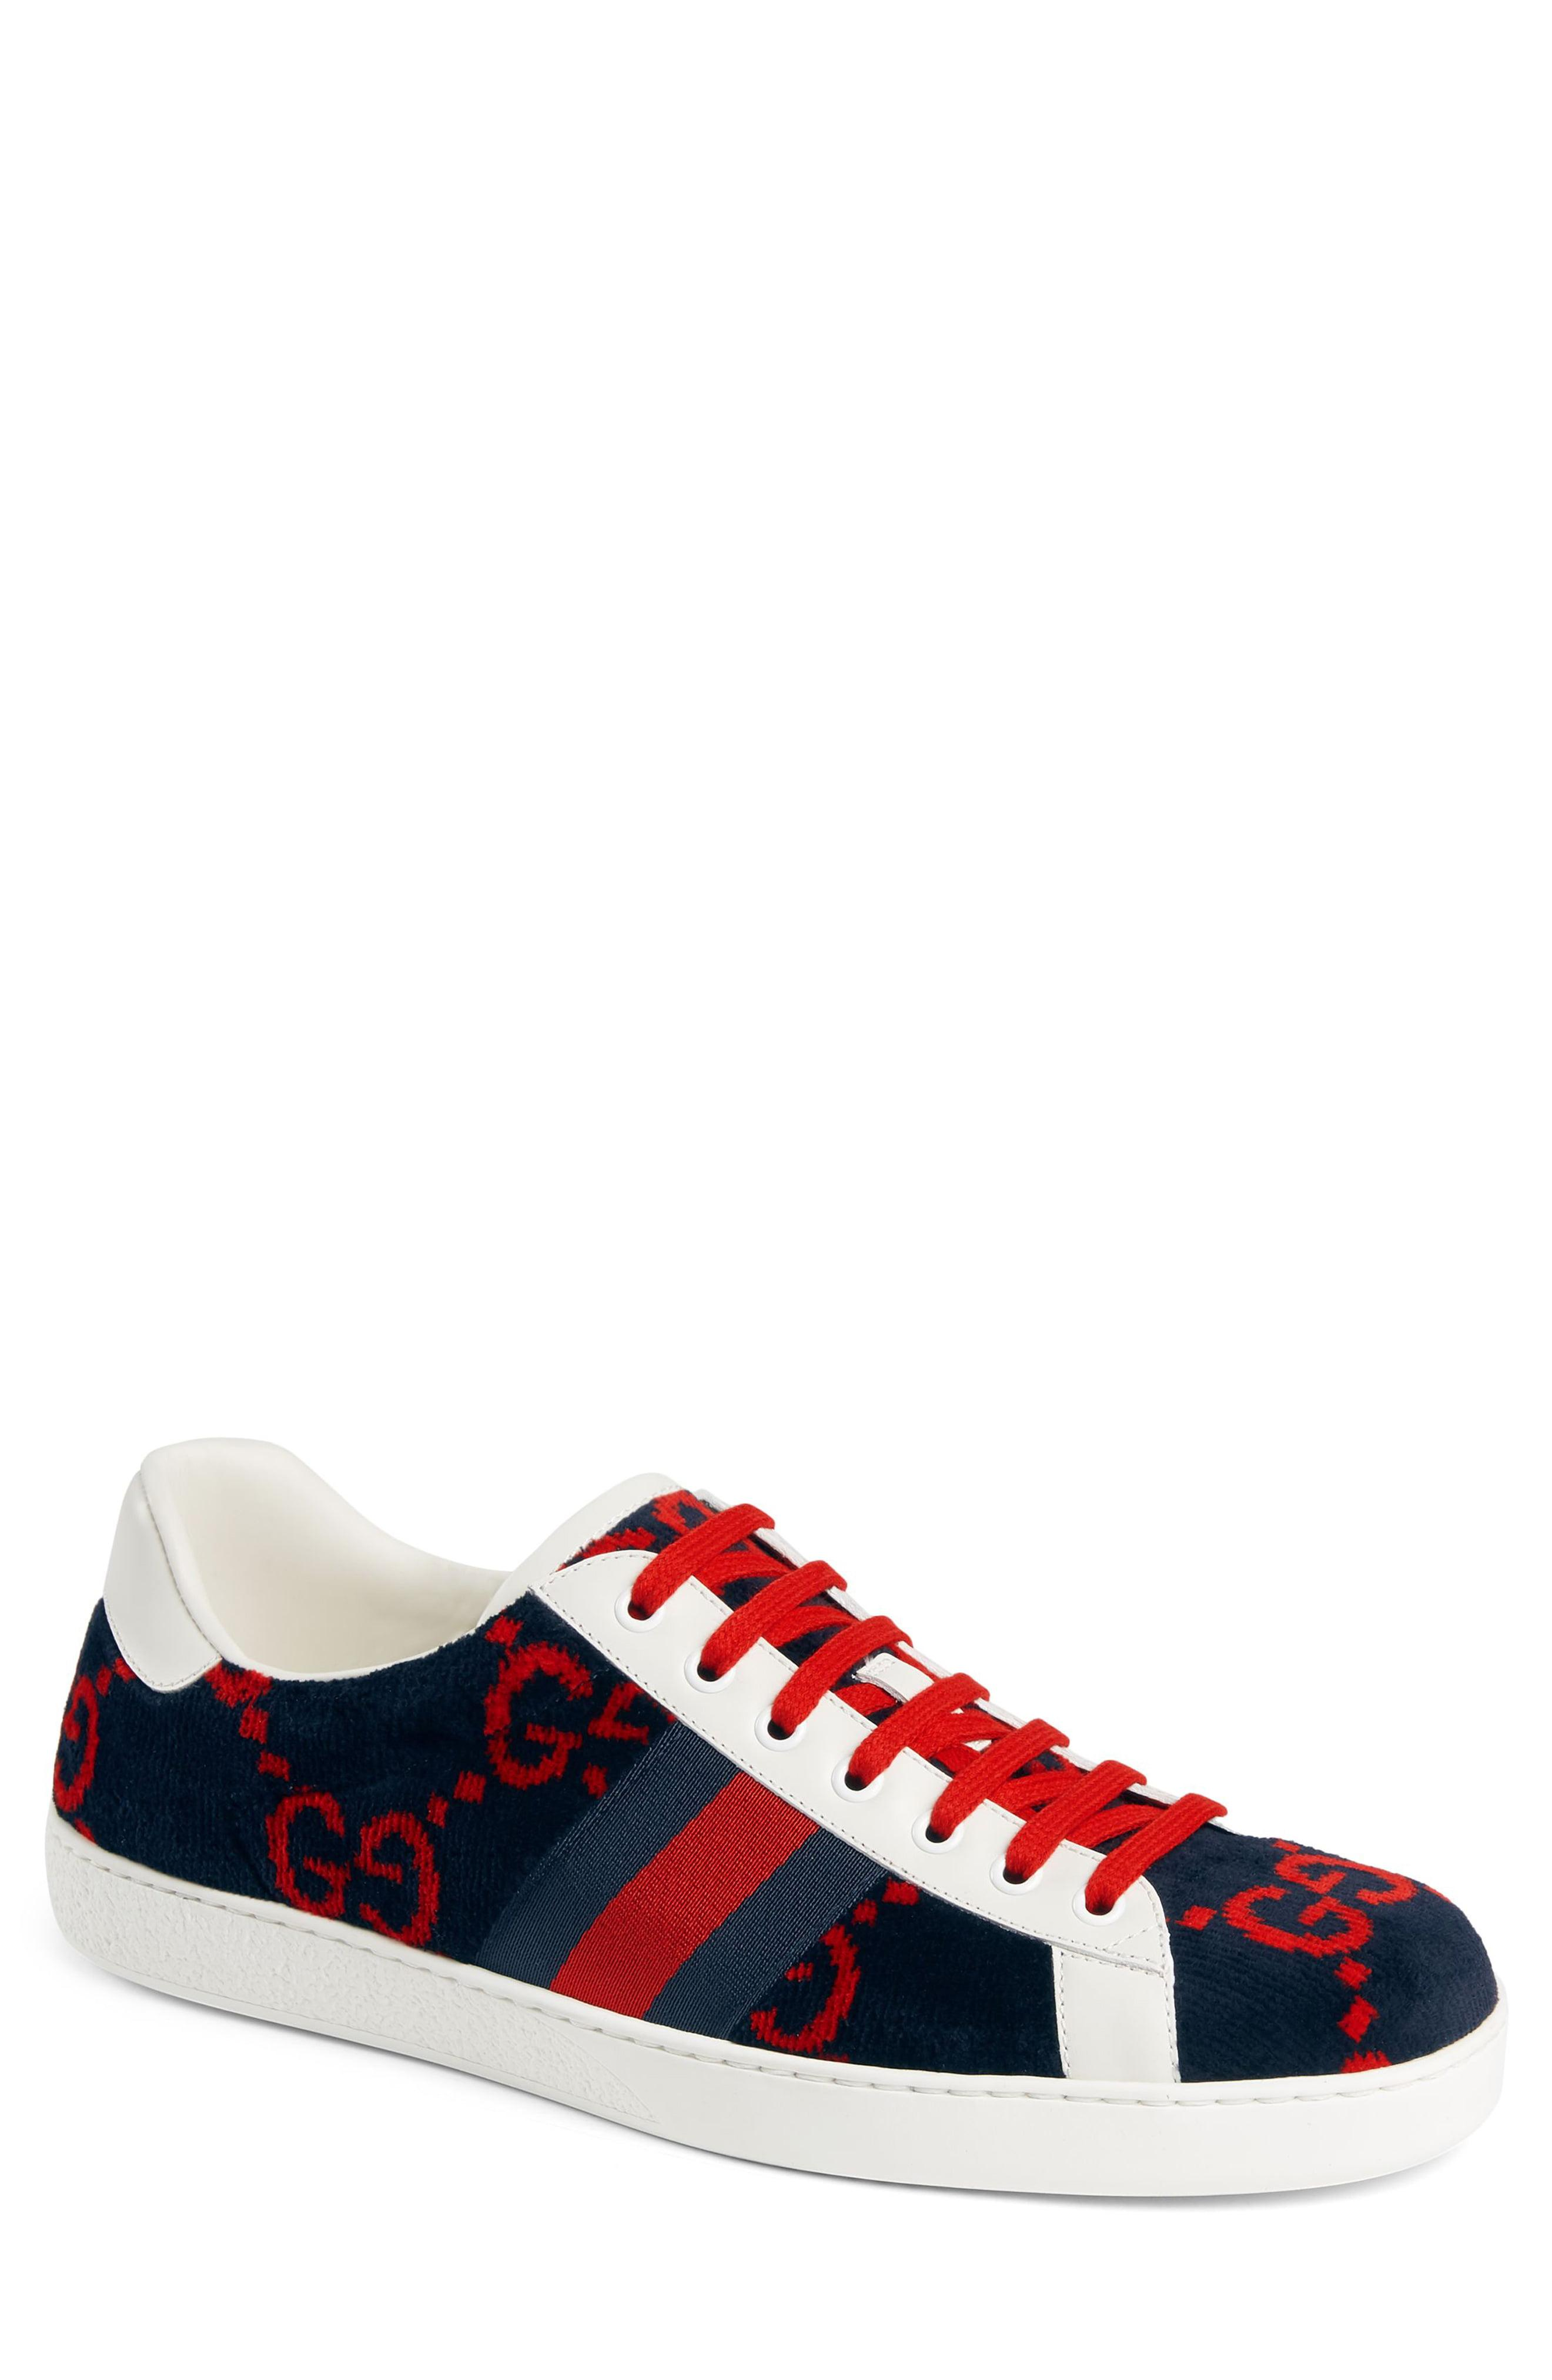 dd4f11439f8 Lyst - Gucci New Ace Gg Logo Sneaker for Men